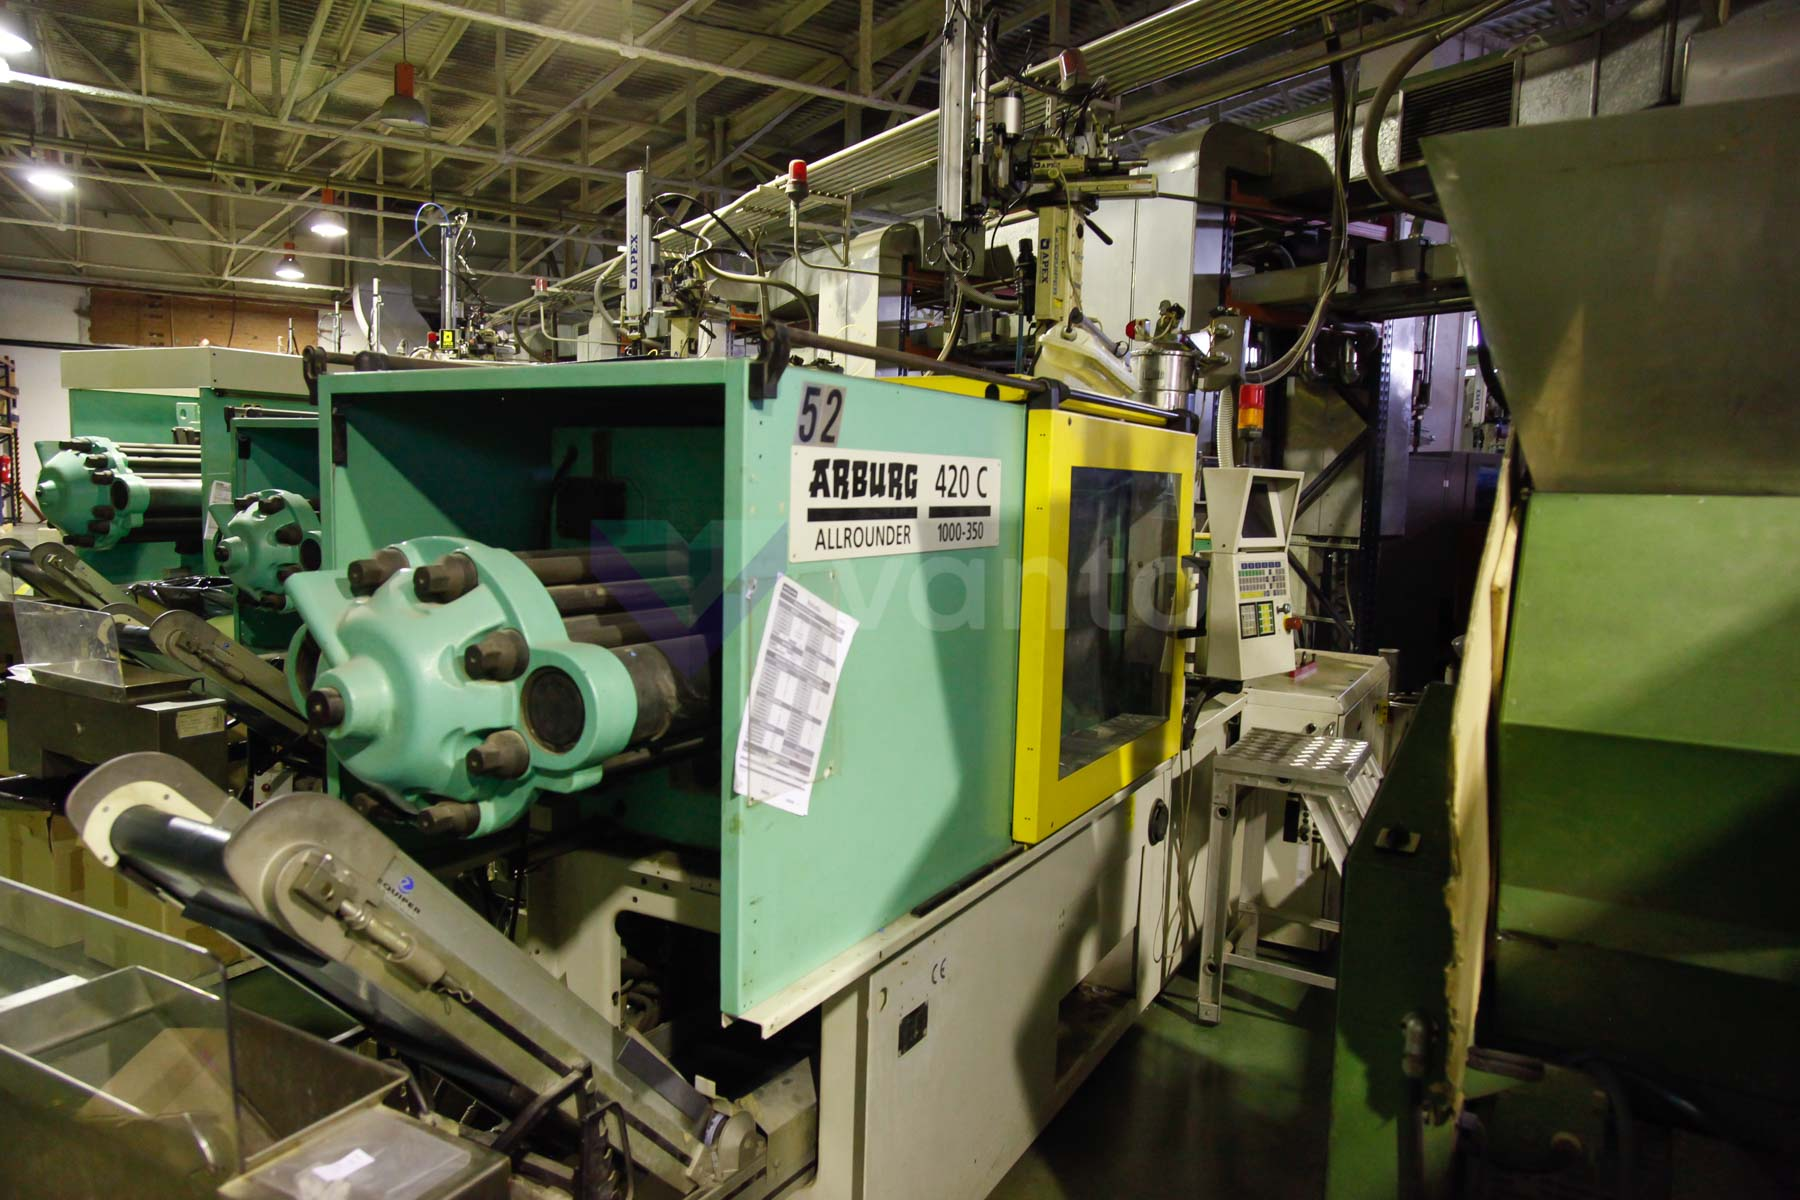 ARBURG 420 C ALLROUNDER 1000 - 350 100t injection molding machine (1999) id4544